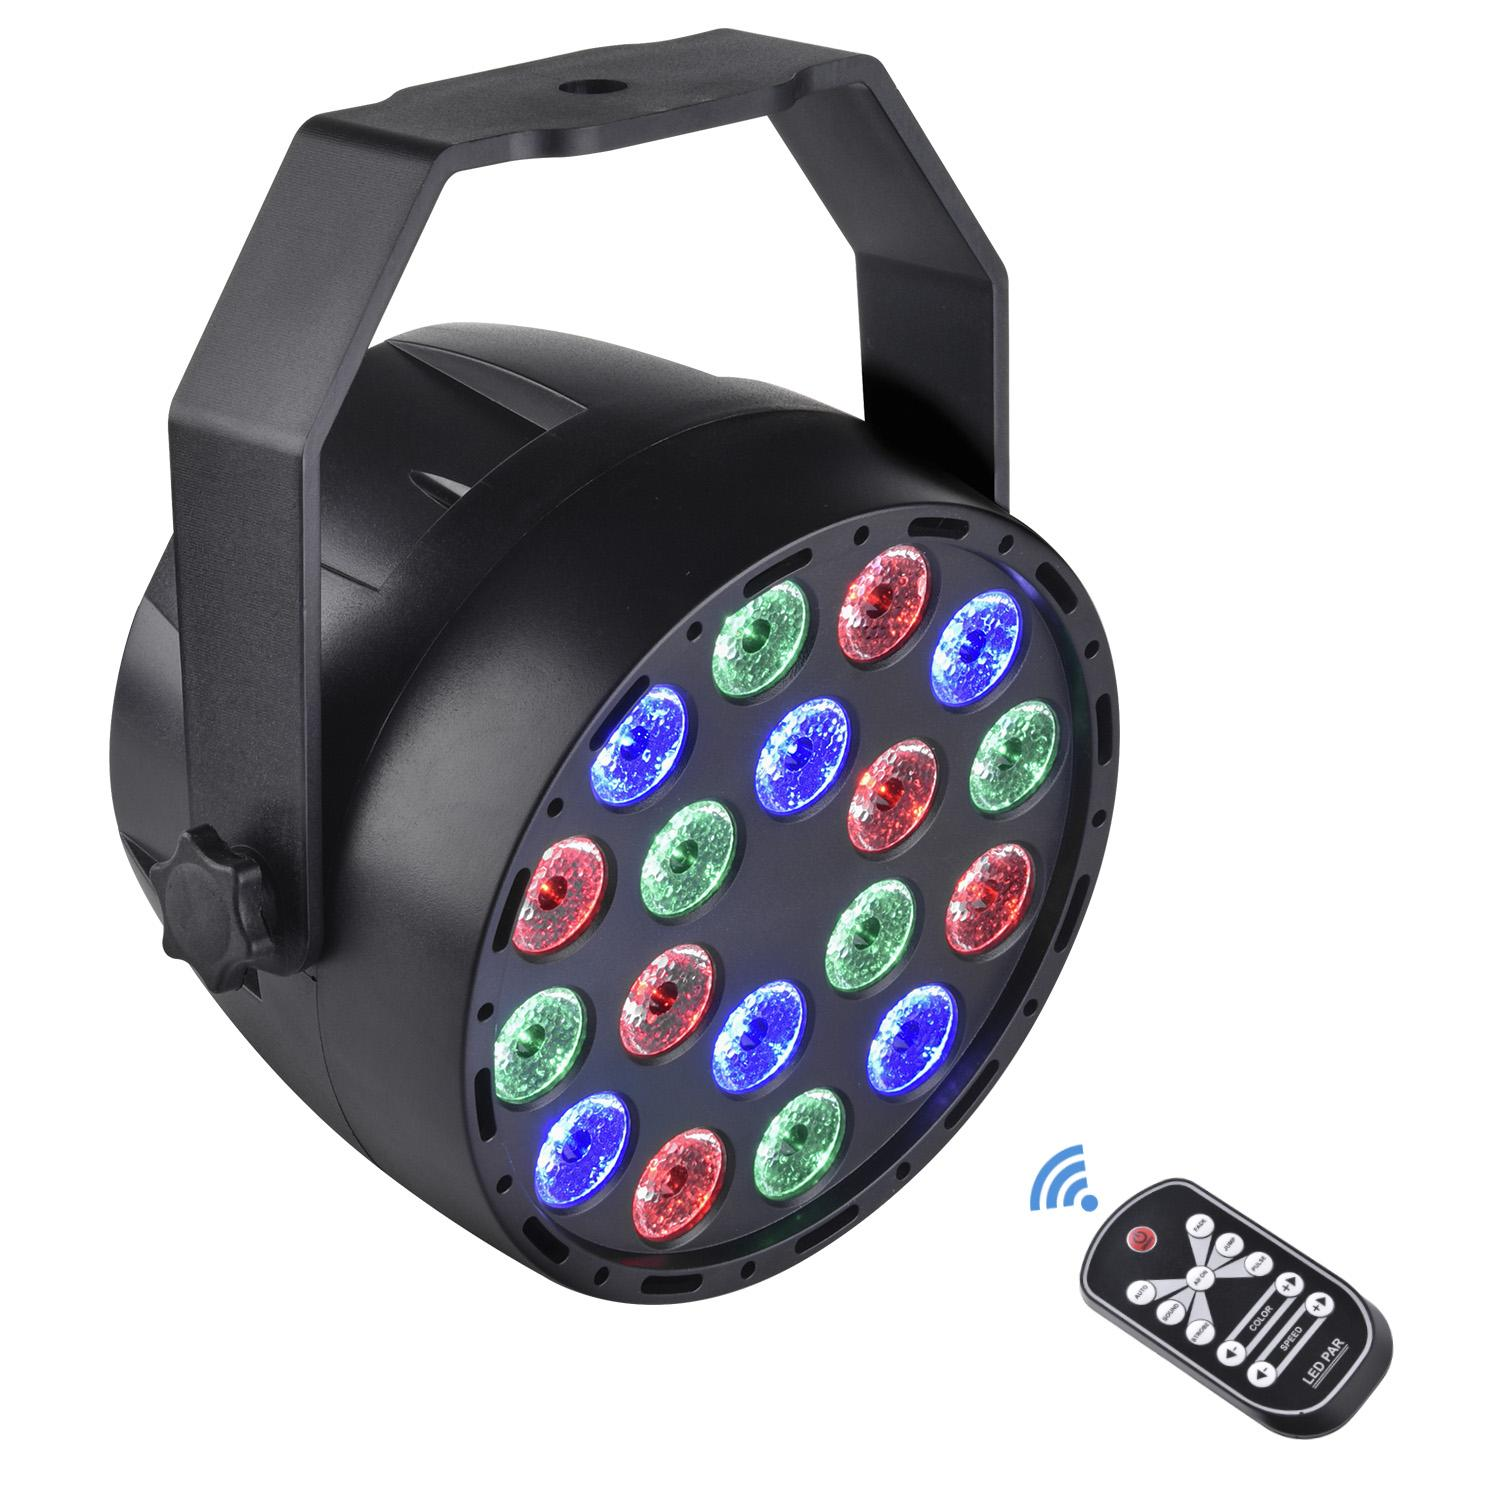 2018 New Arrival Modern 18LED 18W RGB Strobe Stage Effect Lighting DJ Disco Bar Party Hot Selling2018 New Arrival Modern 18LED 18W RGB Strobe Stage Effect Lighting DJ Disco Bar Party Hot Selling